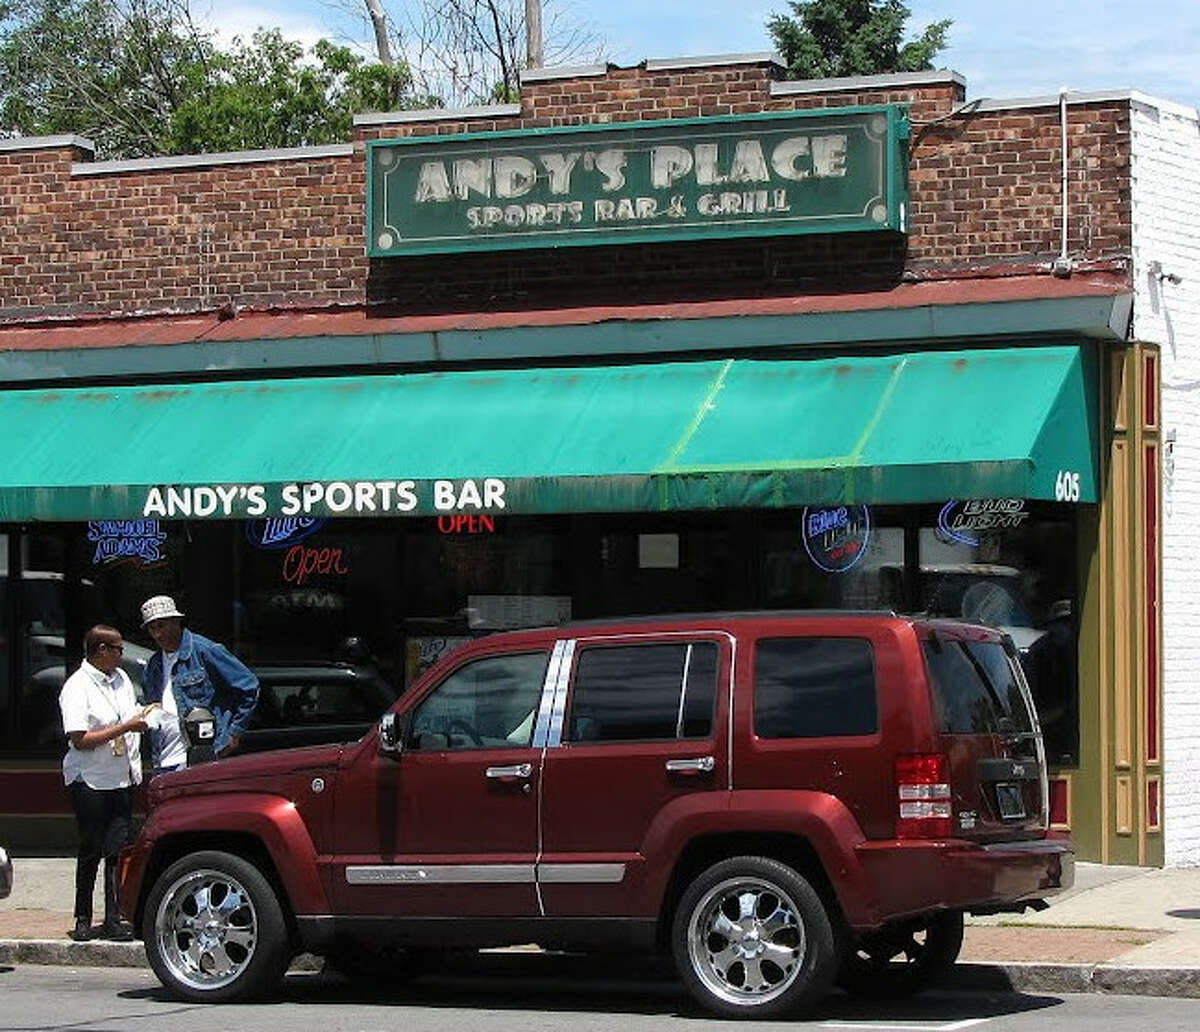 Andy's Place in Albany had its liquor license suspended by the state for allegedly violating restrictions on the sale of alcohol related to the effort to stem the coronavirus pandemic.